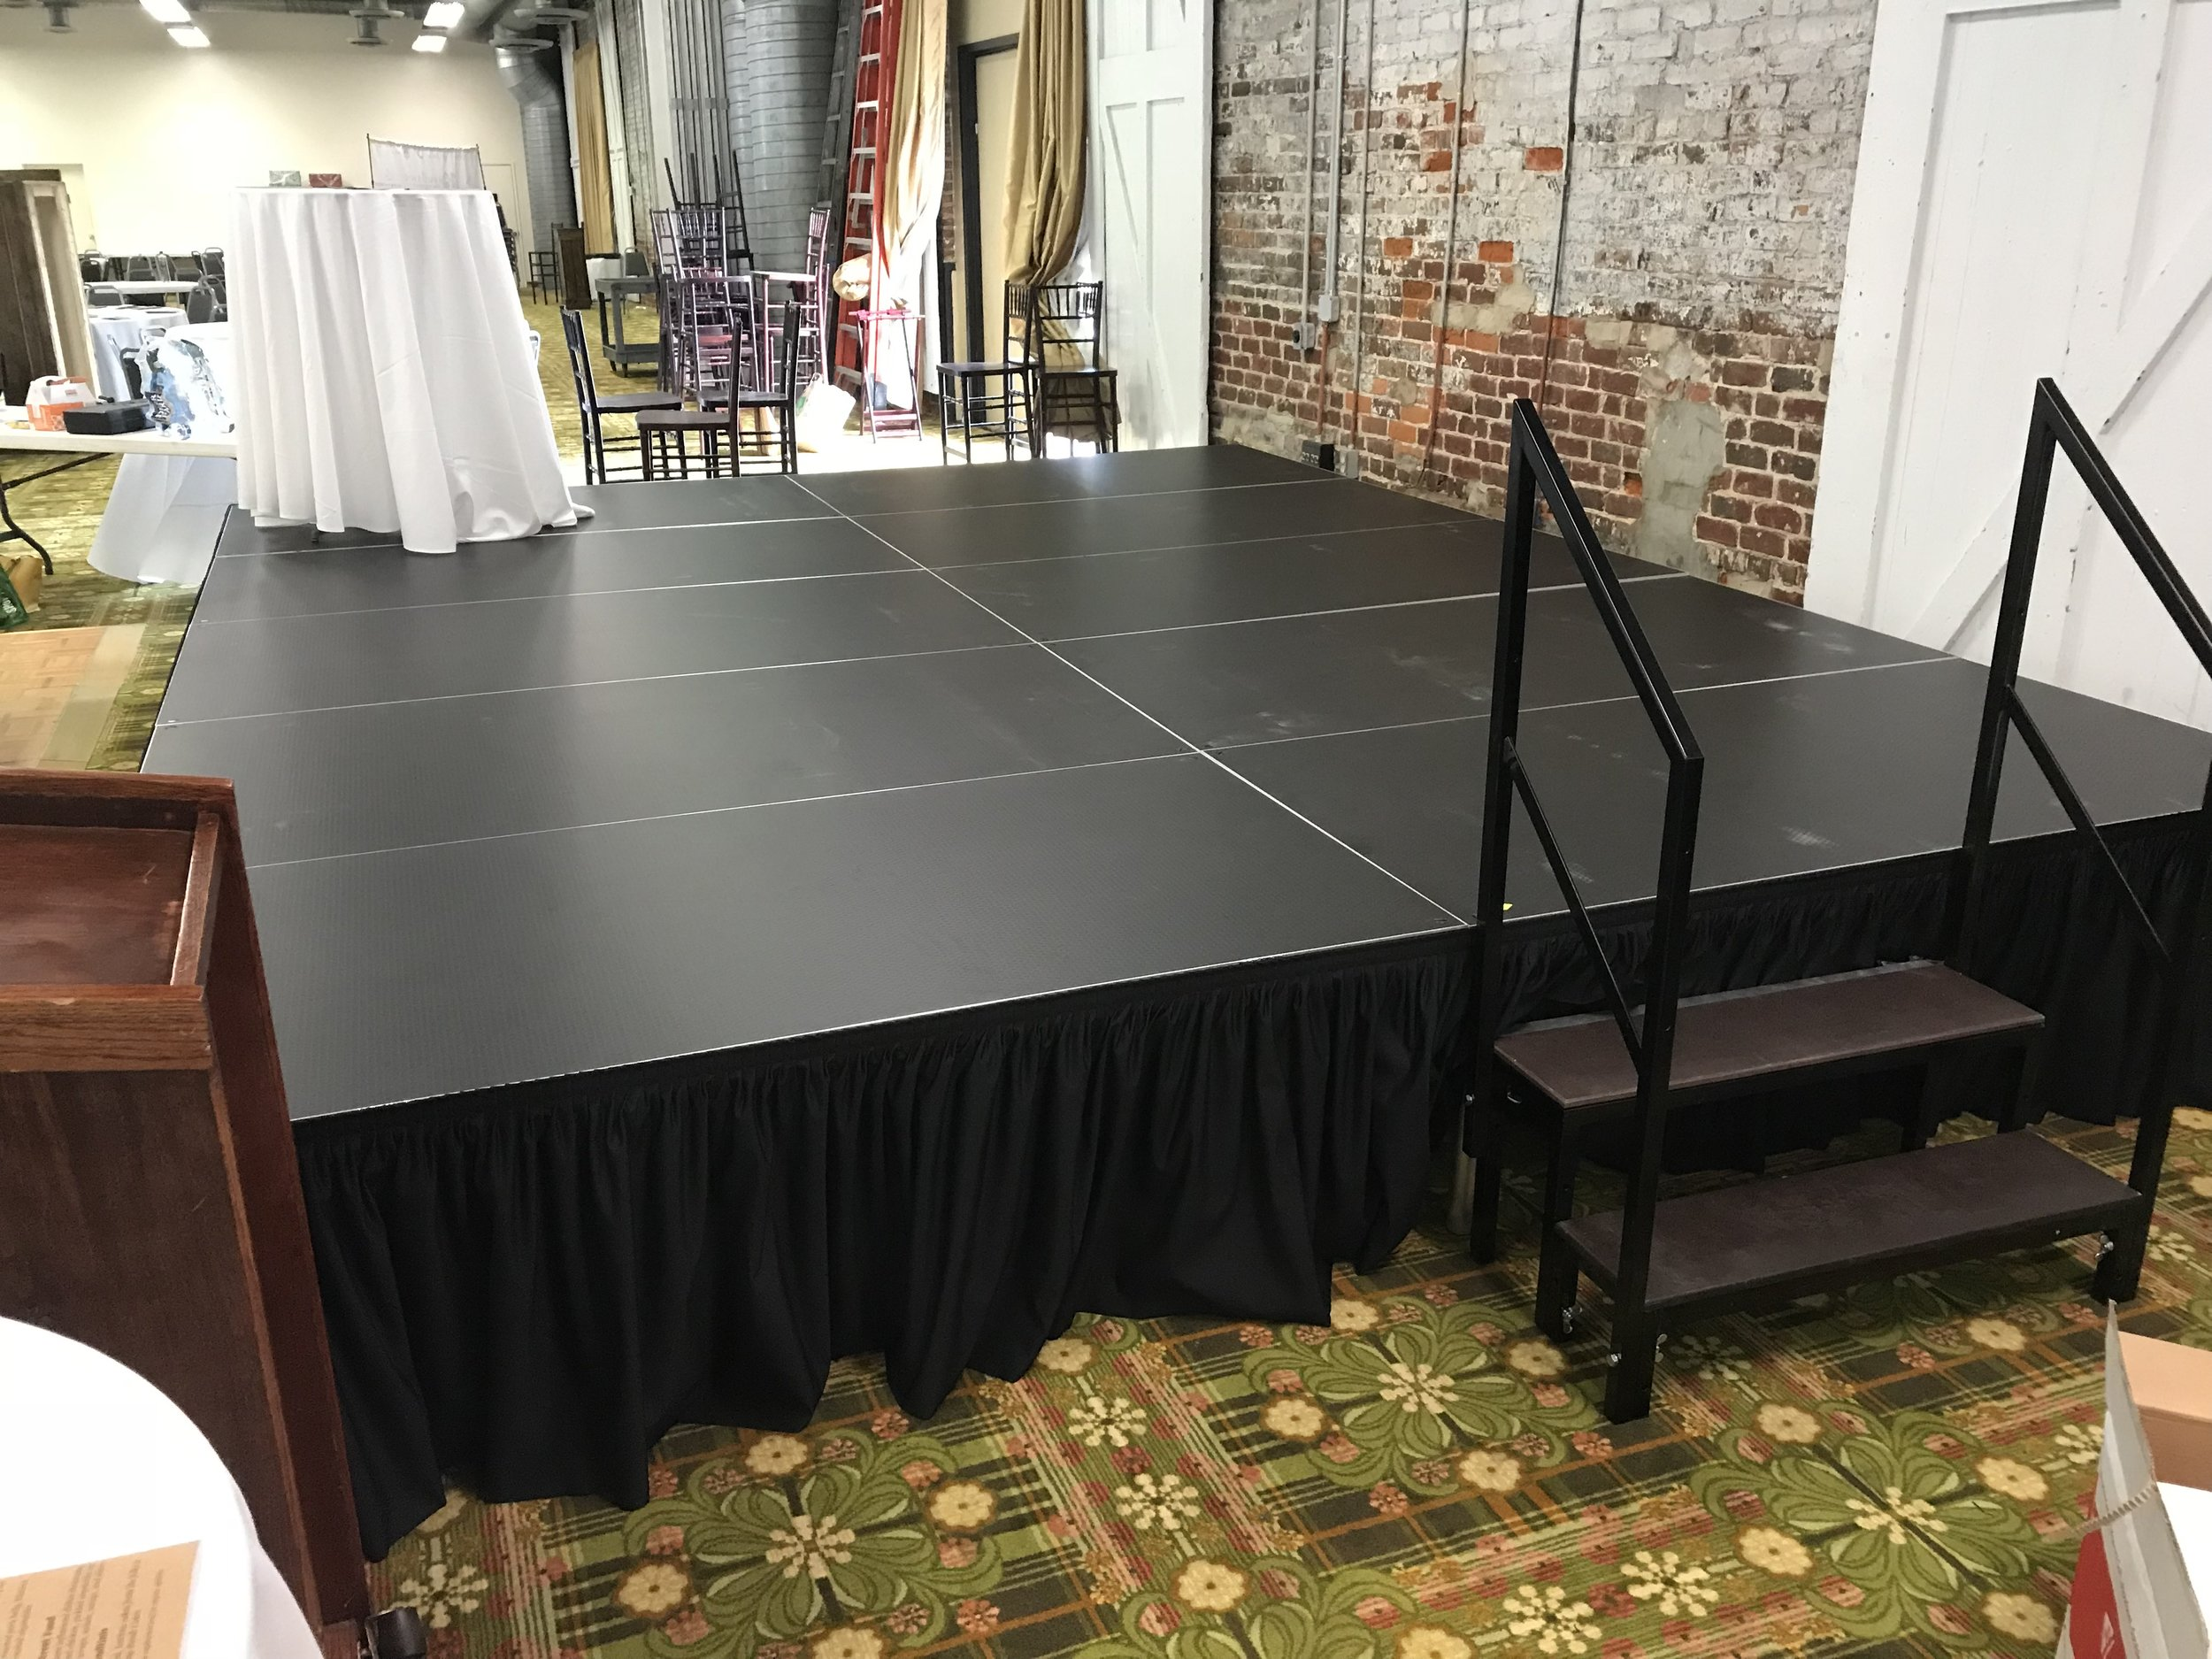 2ft tall, 16ft wide, 12ft deep stage for Nourish NC